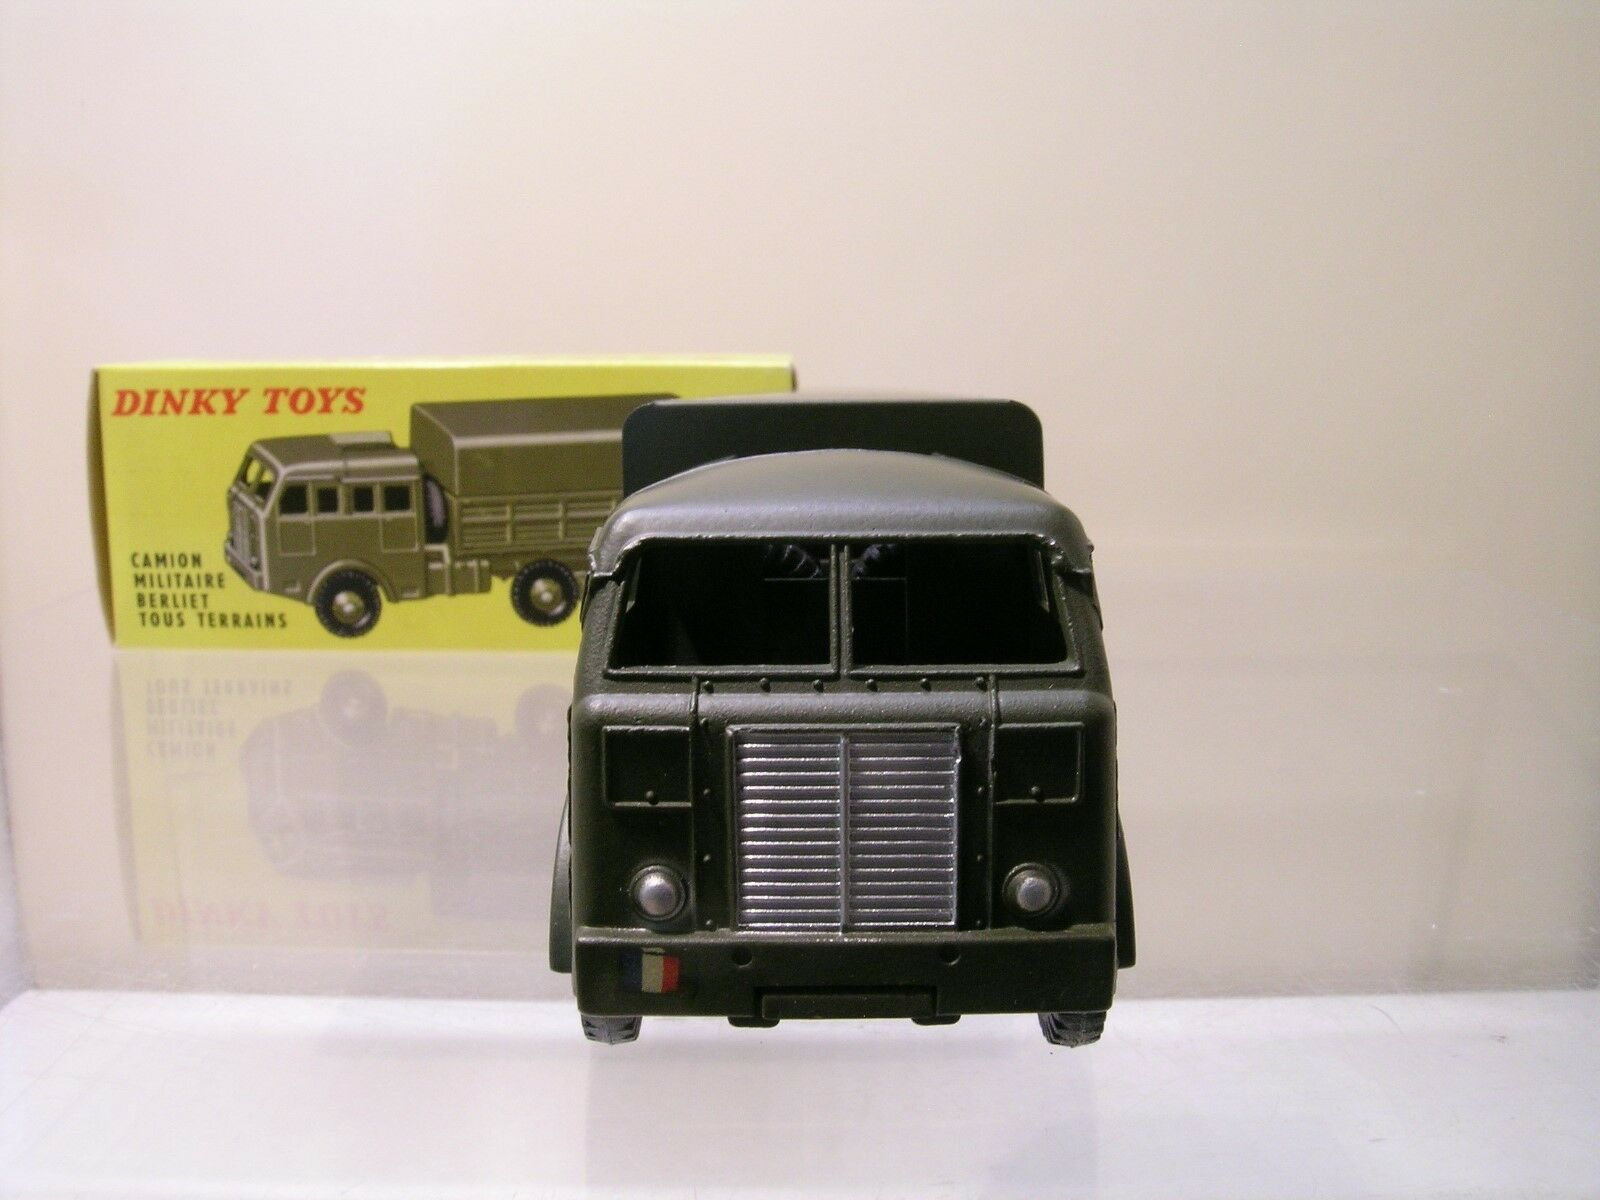 DINKY TOYS FRANCE NR.818 NR.818 NR.818 CAMION MILITAIRE BERLIET TOUT TERRAINS MINT BOXED 1 55 704b68